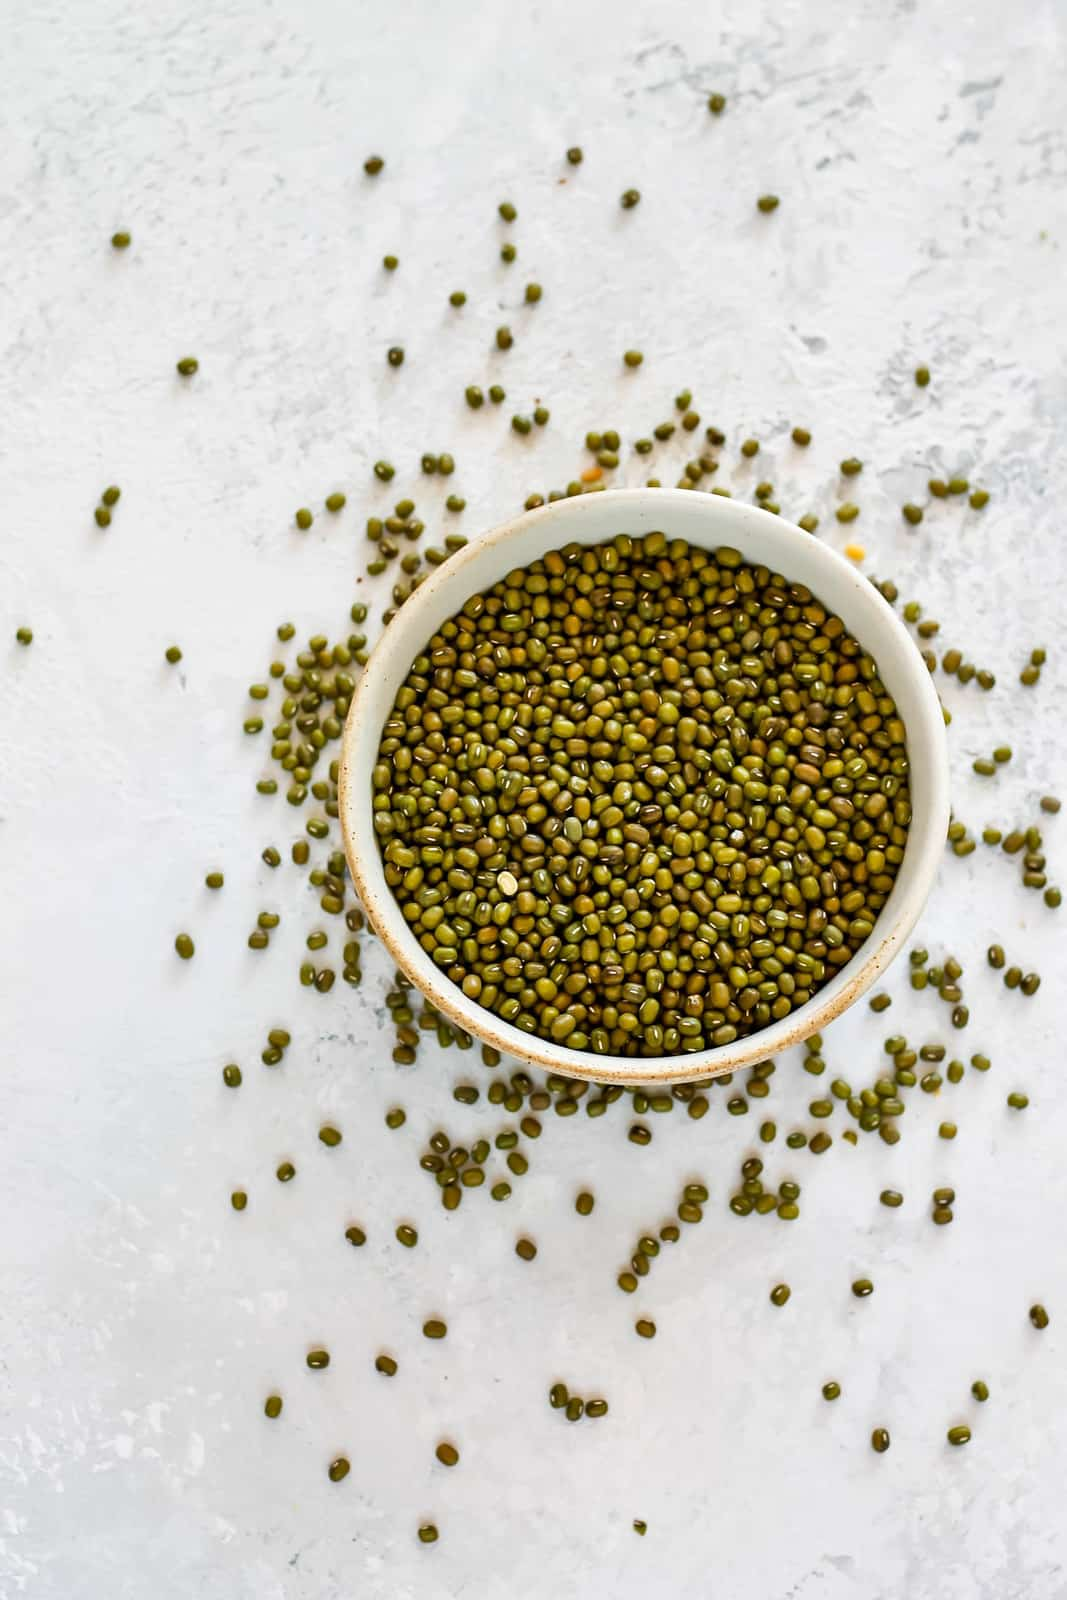 overhead photo of mung beans in a bowl with scattered beans in the background